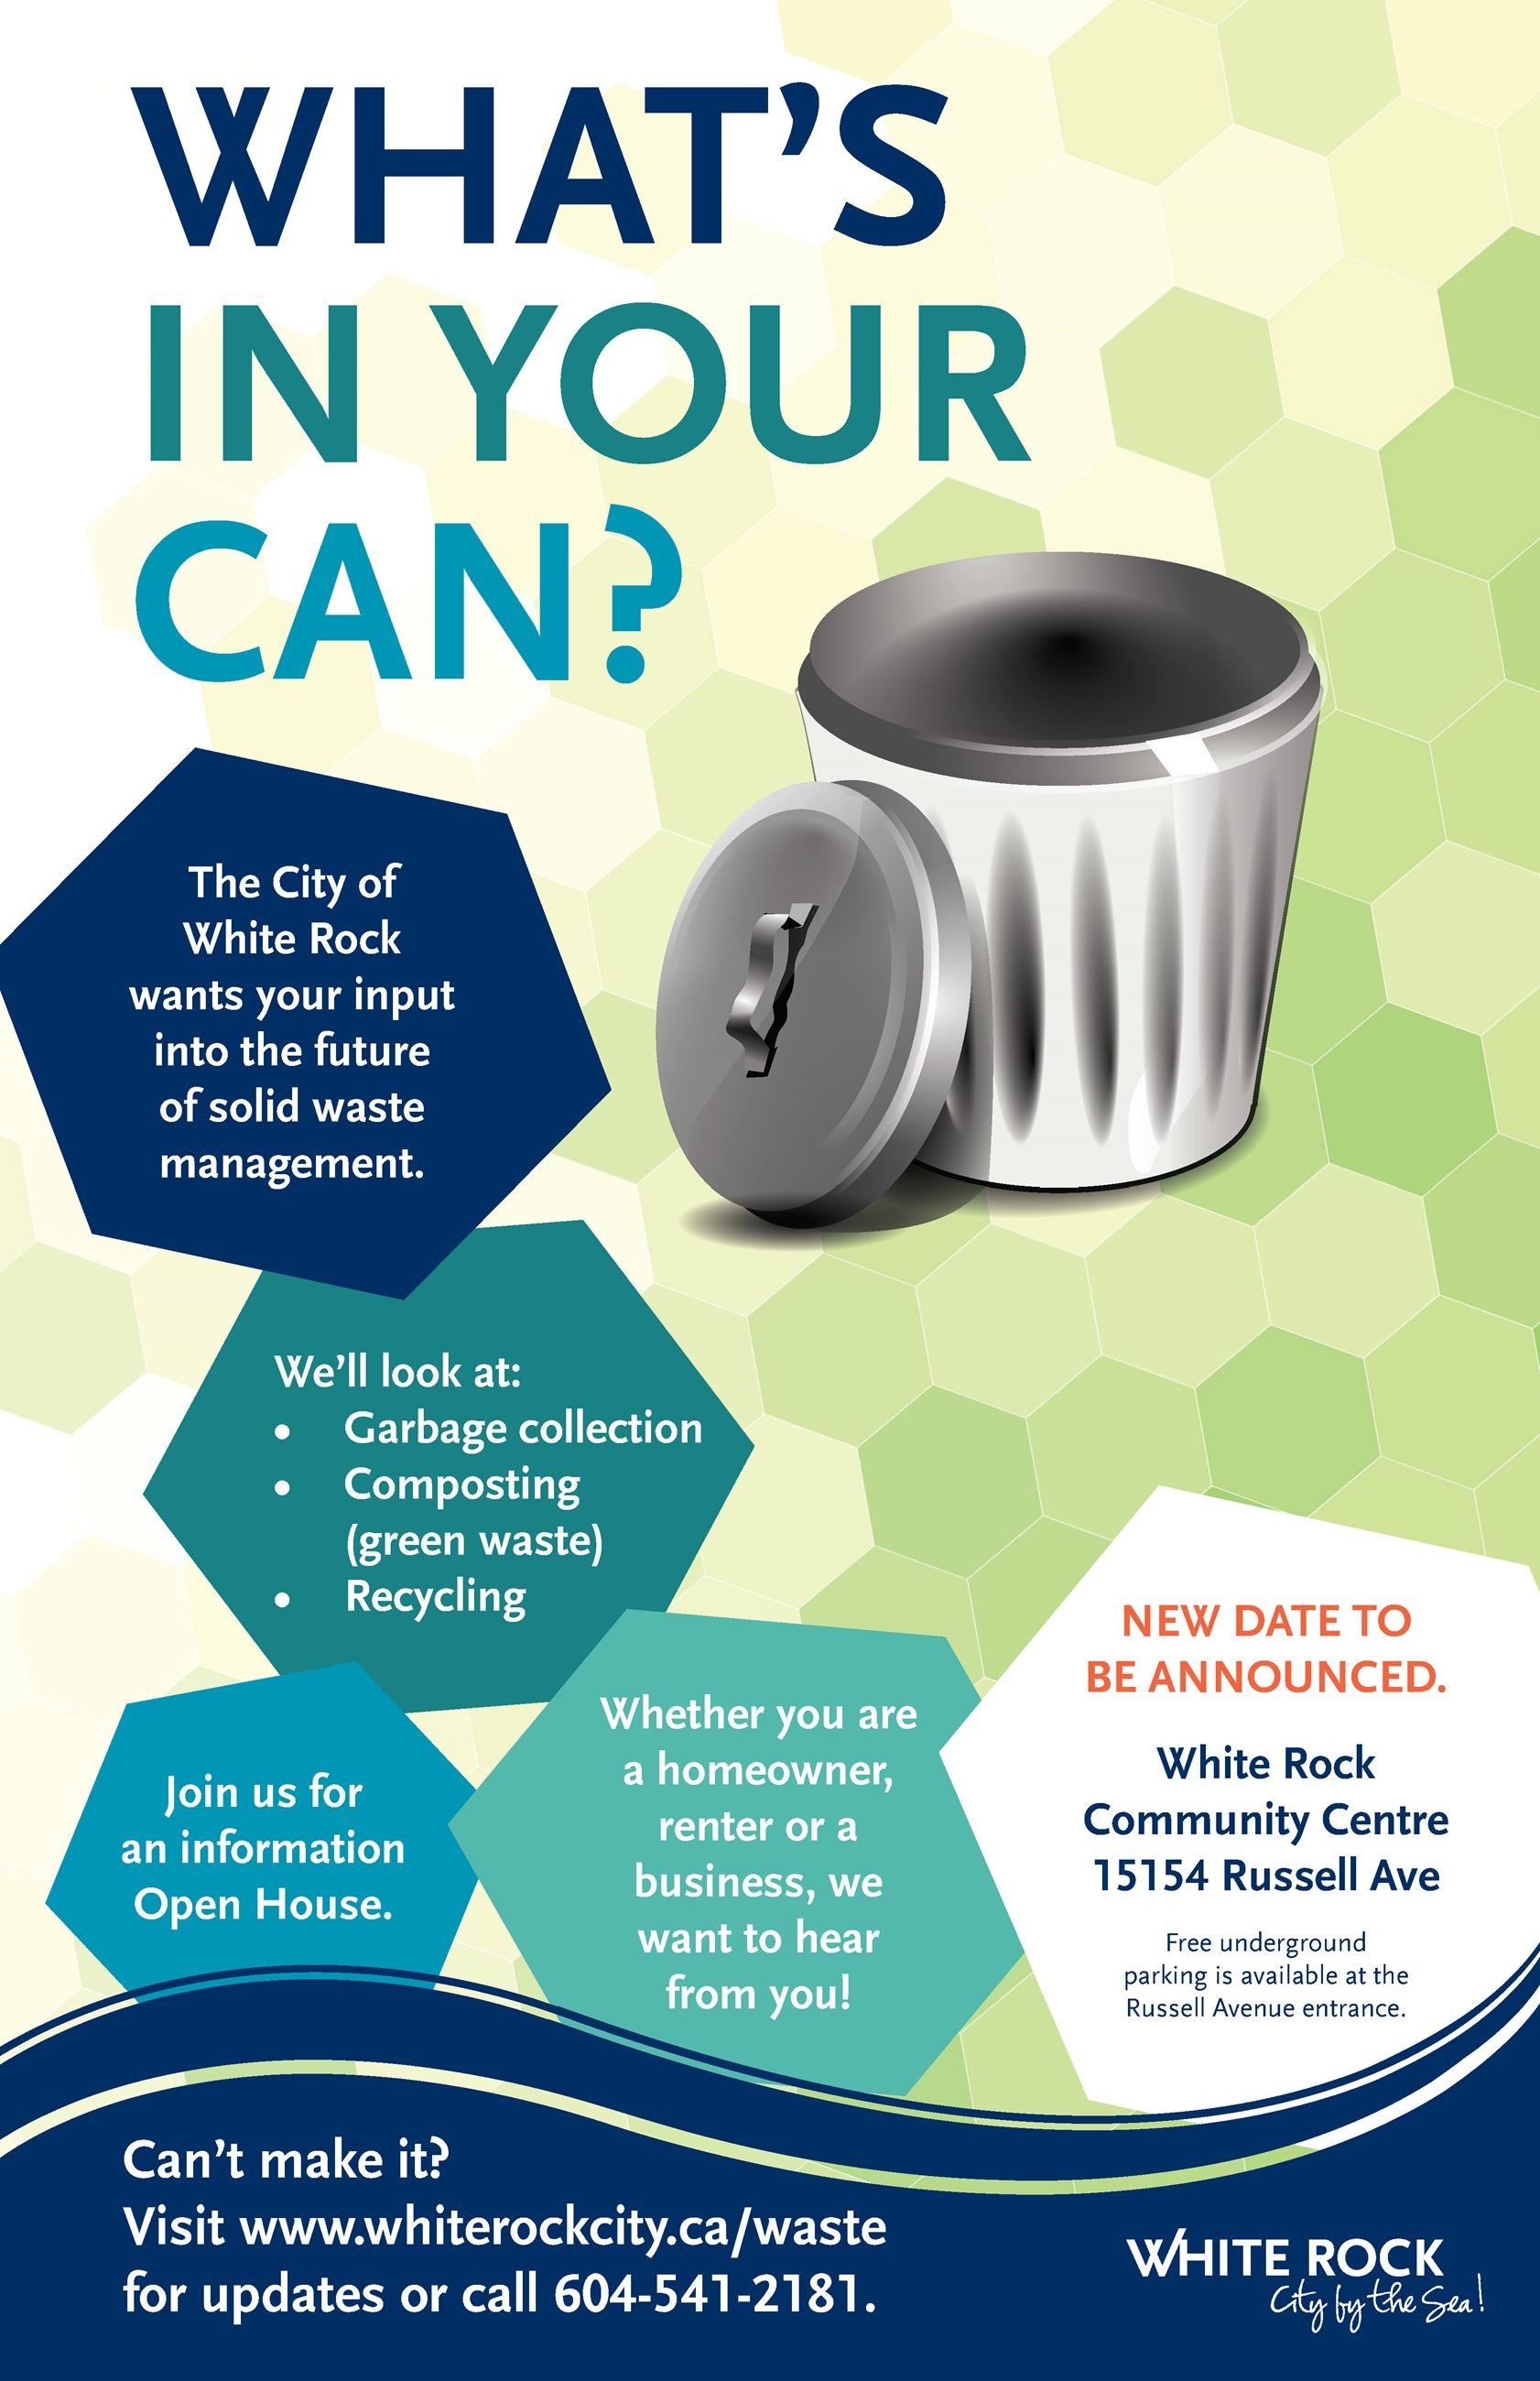 Whats in your can poster - new date